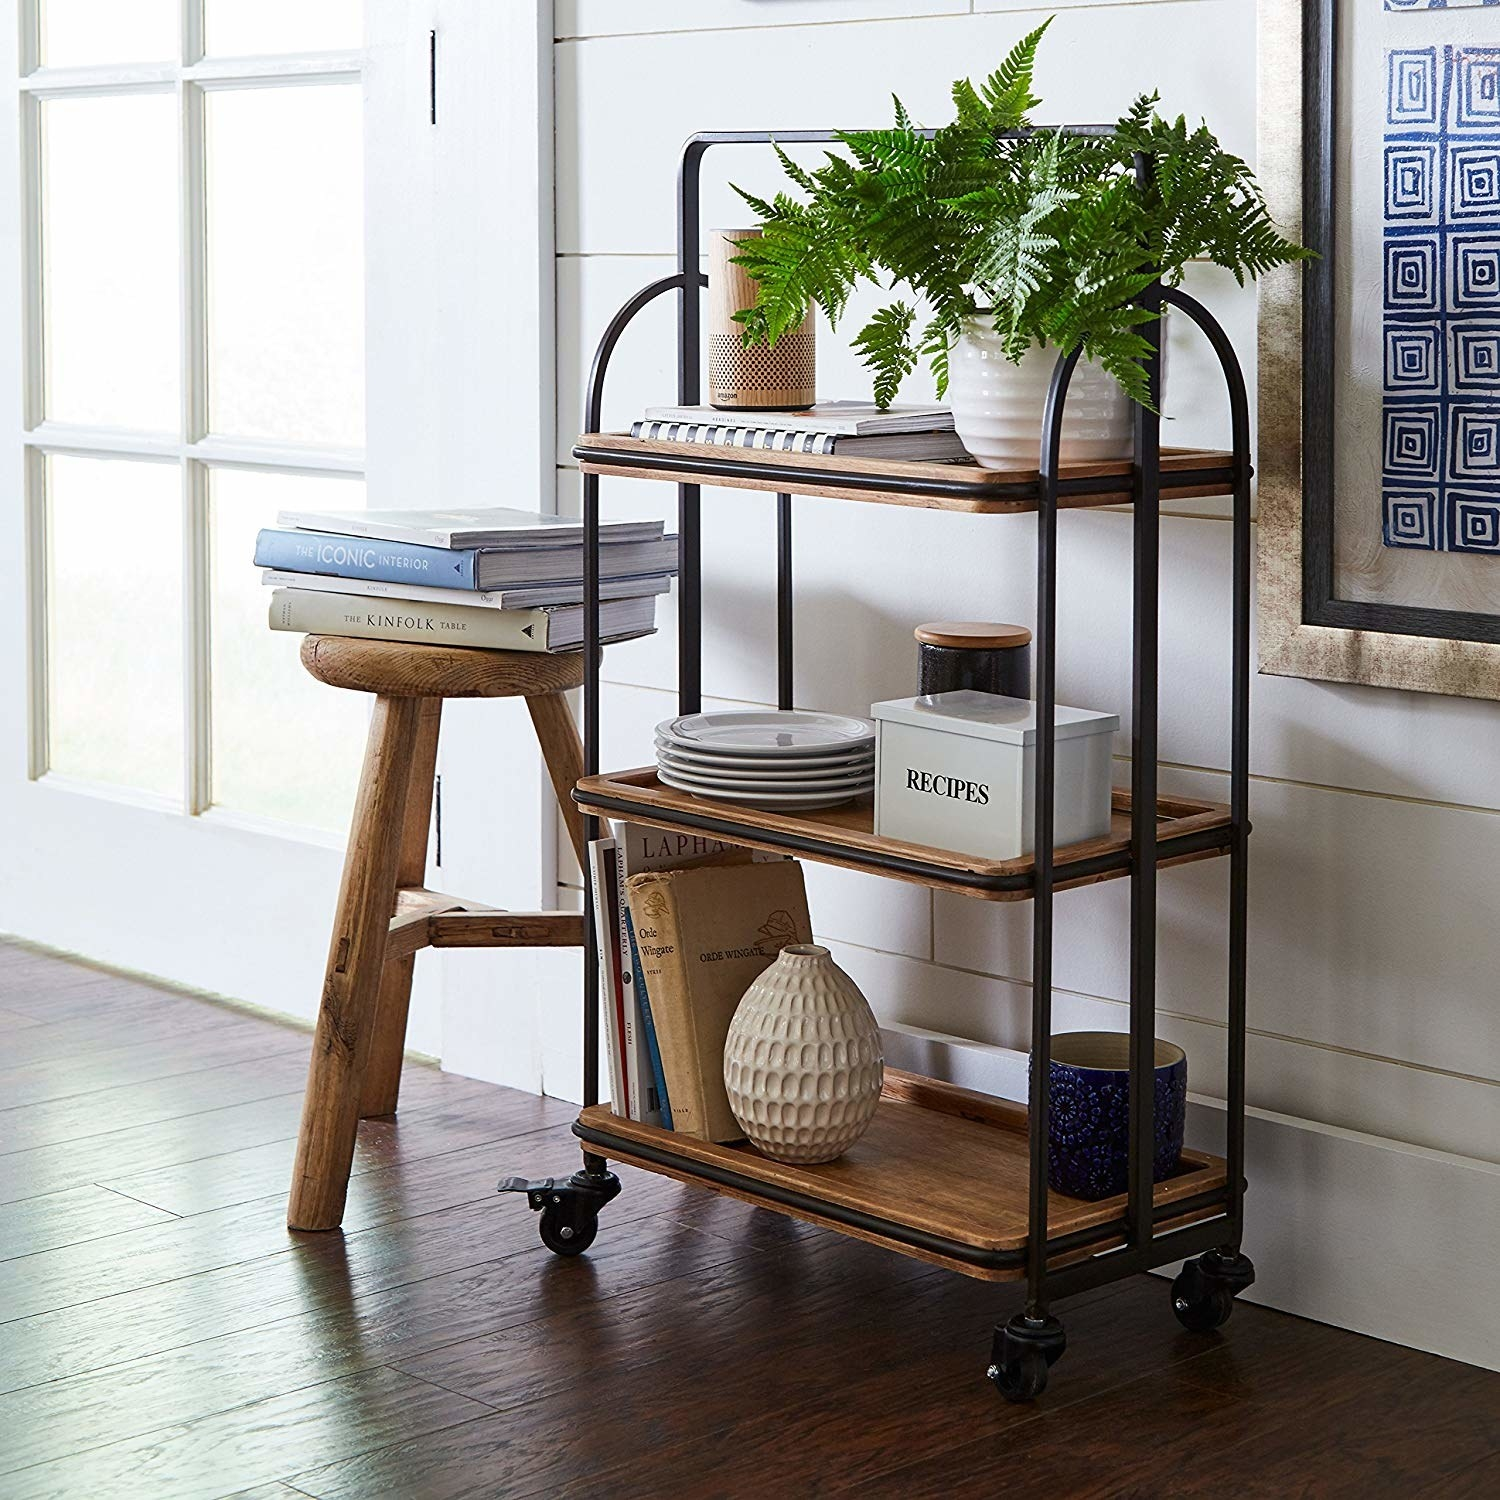 The wooden kitchen cart, featuring three shelves and matte black hardware